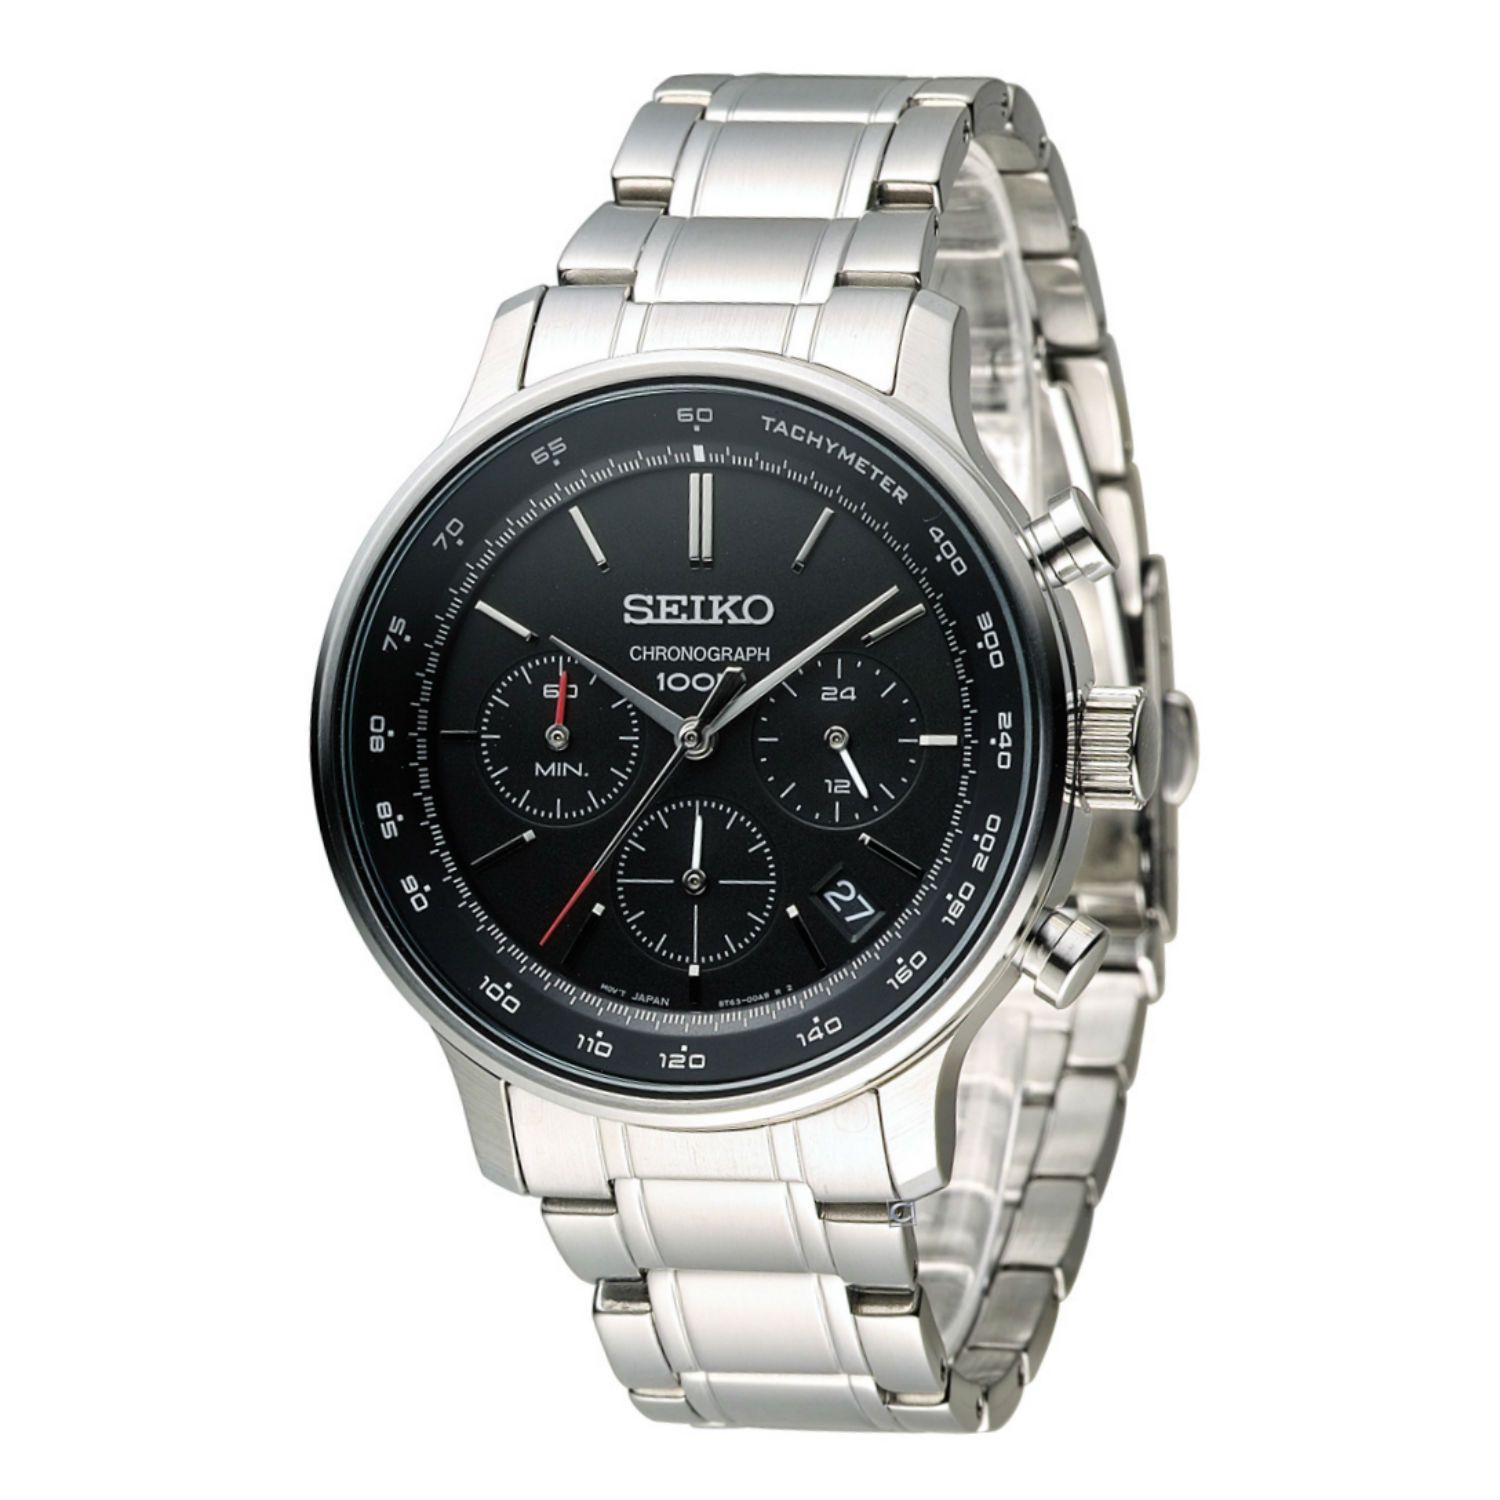 Seiko Men's SSB165P1 Conceptual Watch